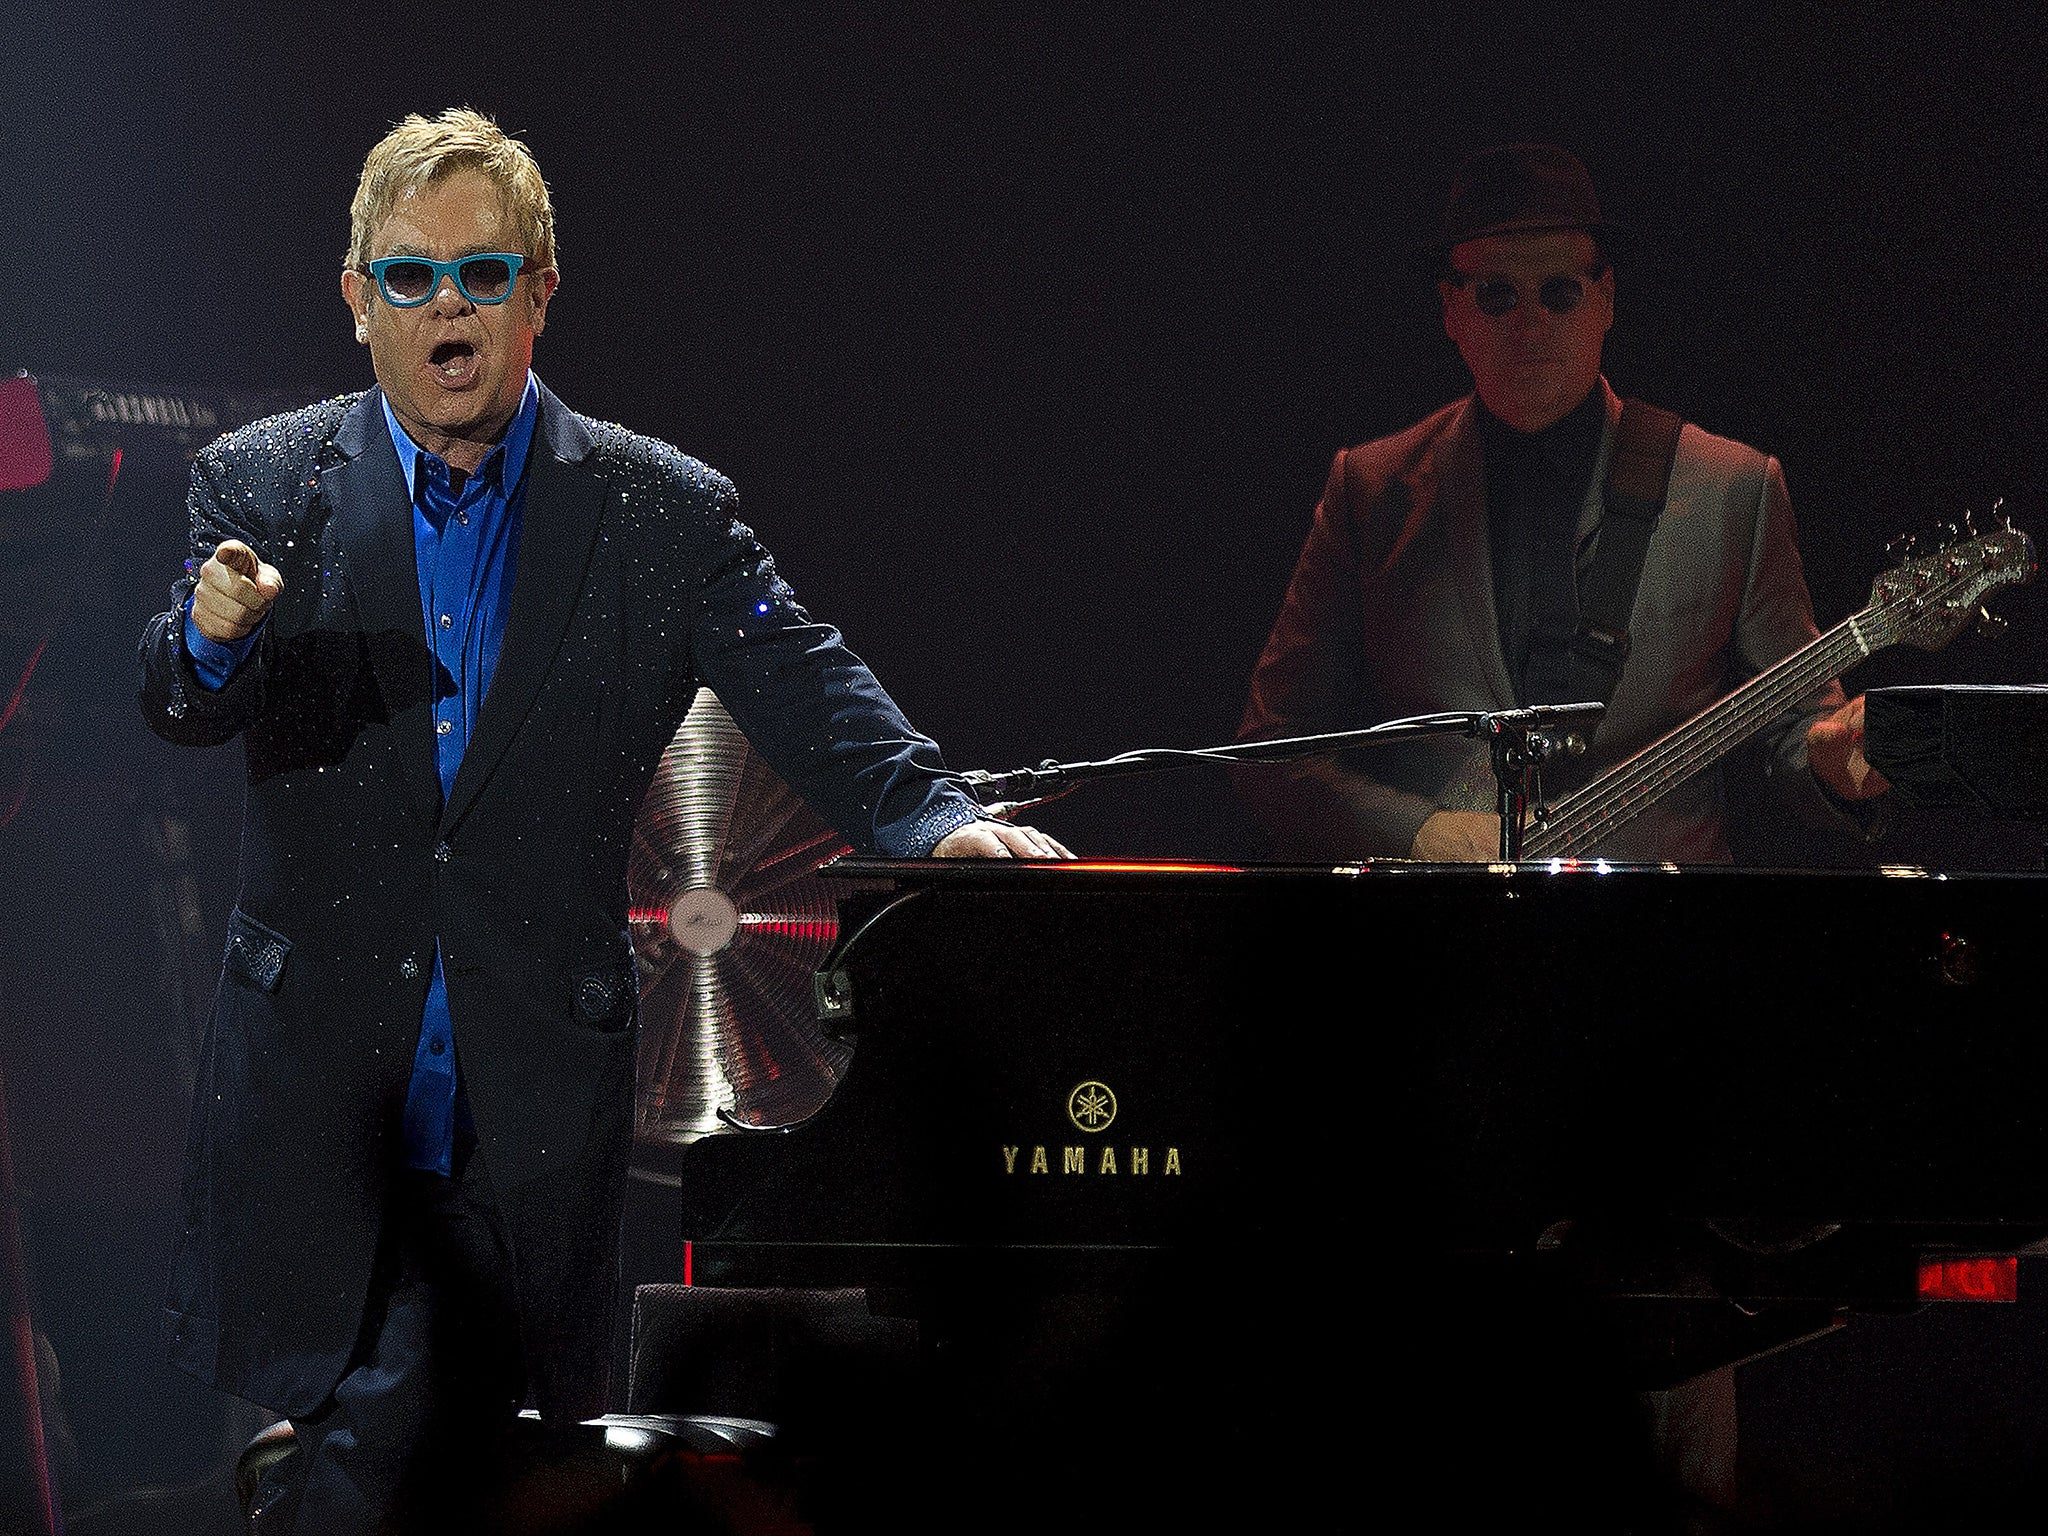 Elton John Fans Left Fuming After Traffic Jams Force Them To Miss Exeter  Concert  The Independent